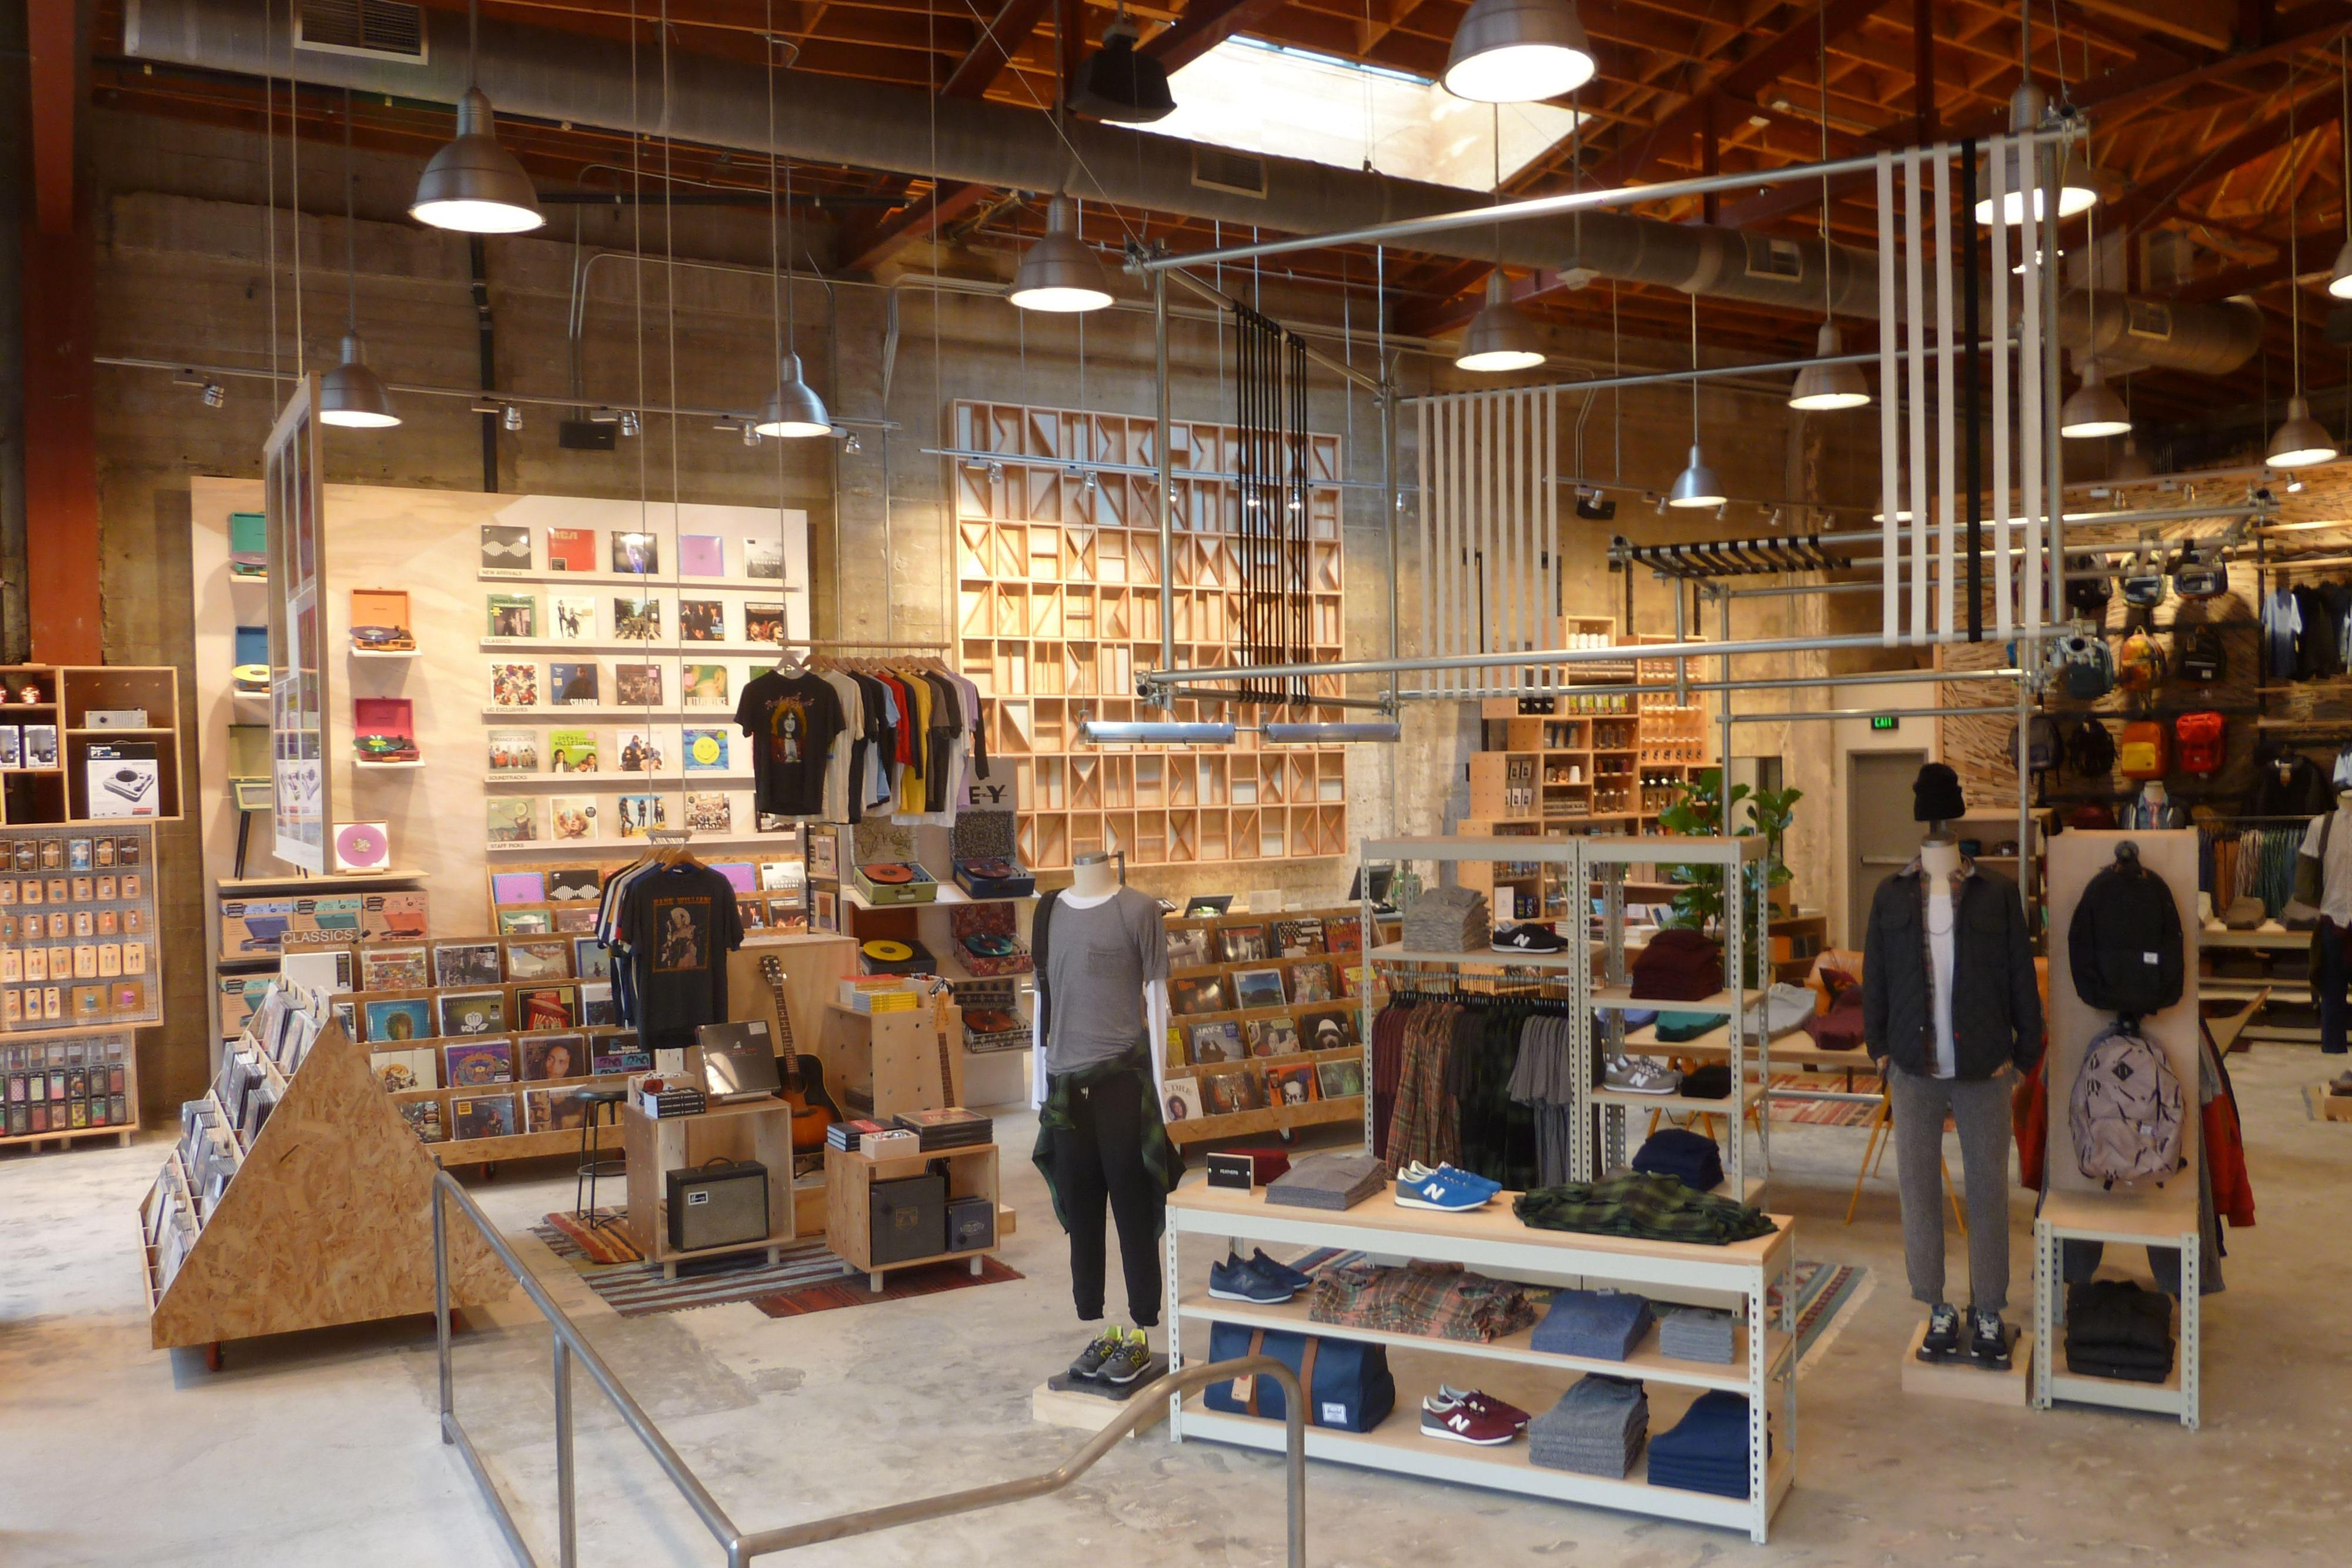 brandchannel: Urban Outfitters Buys Pizza Chain to Expand